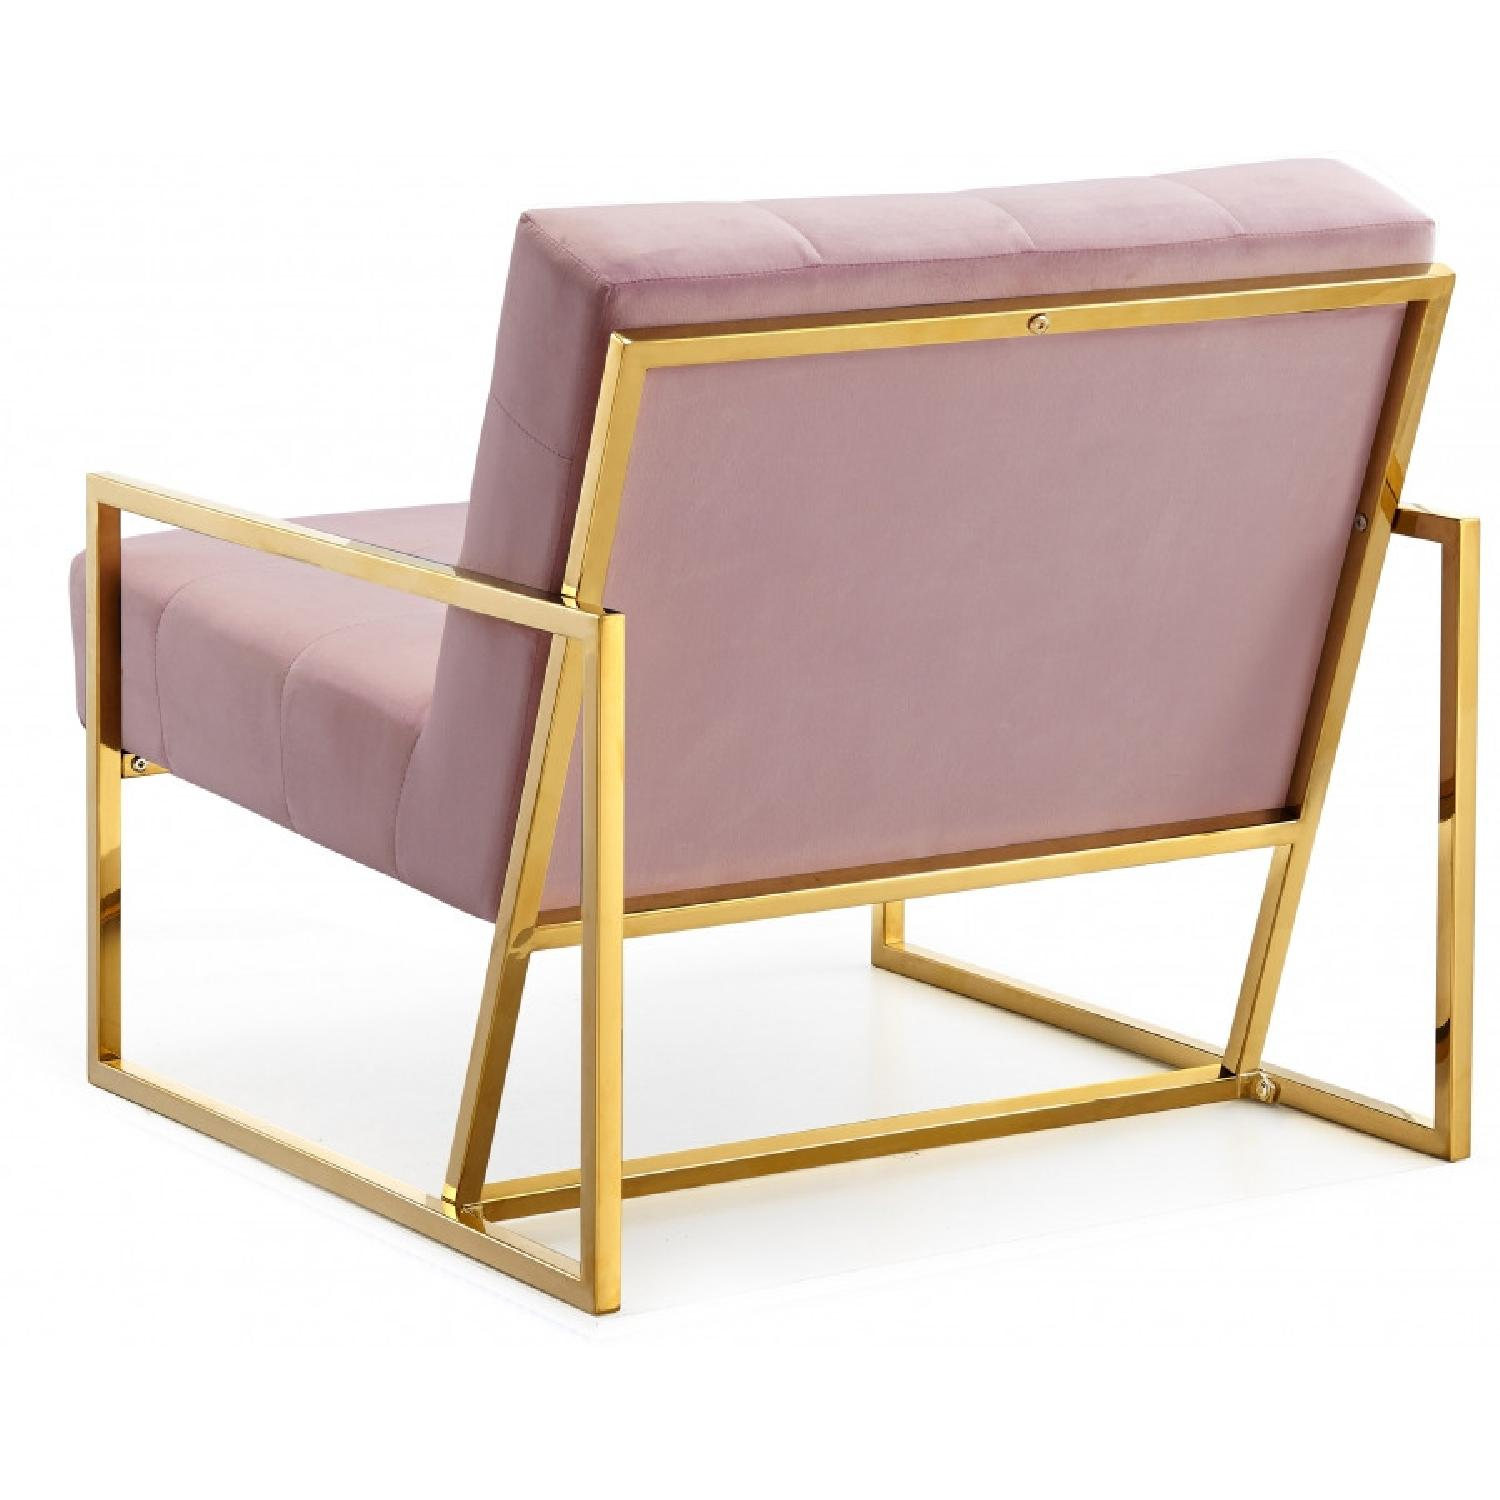 Meridian Furniture Pink & Gold Pierre Velvet Accent Chair - image-5